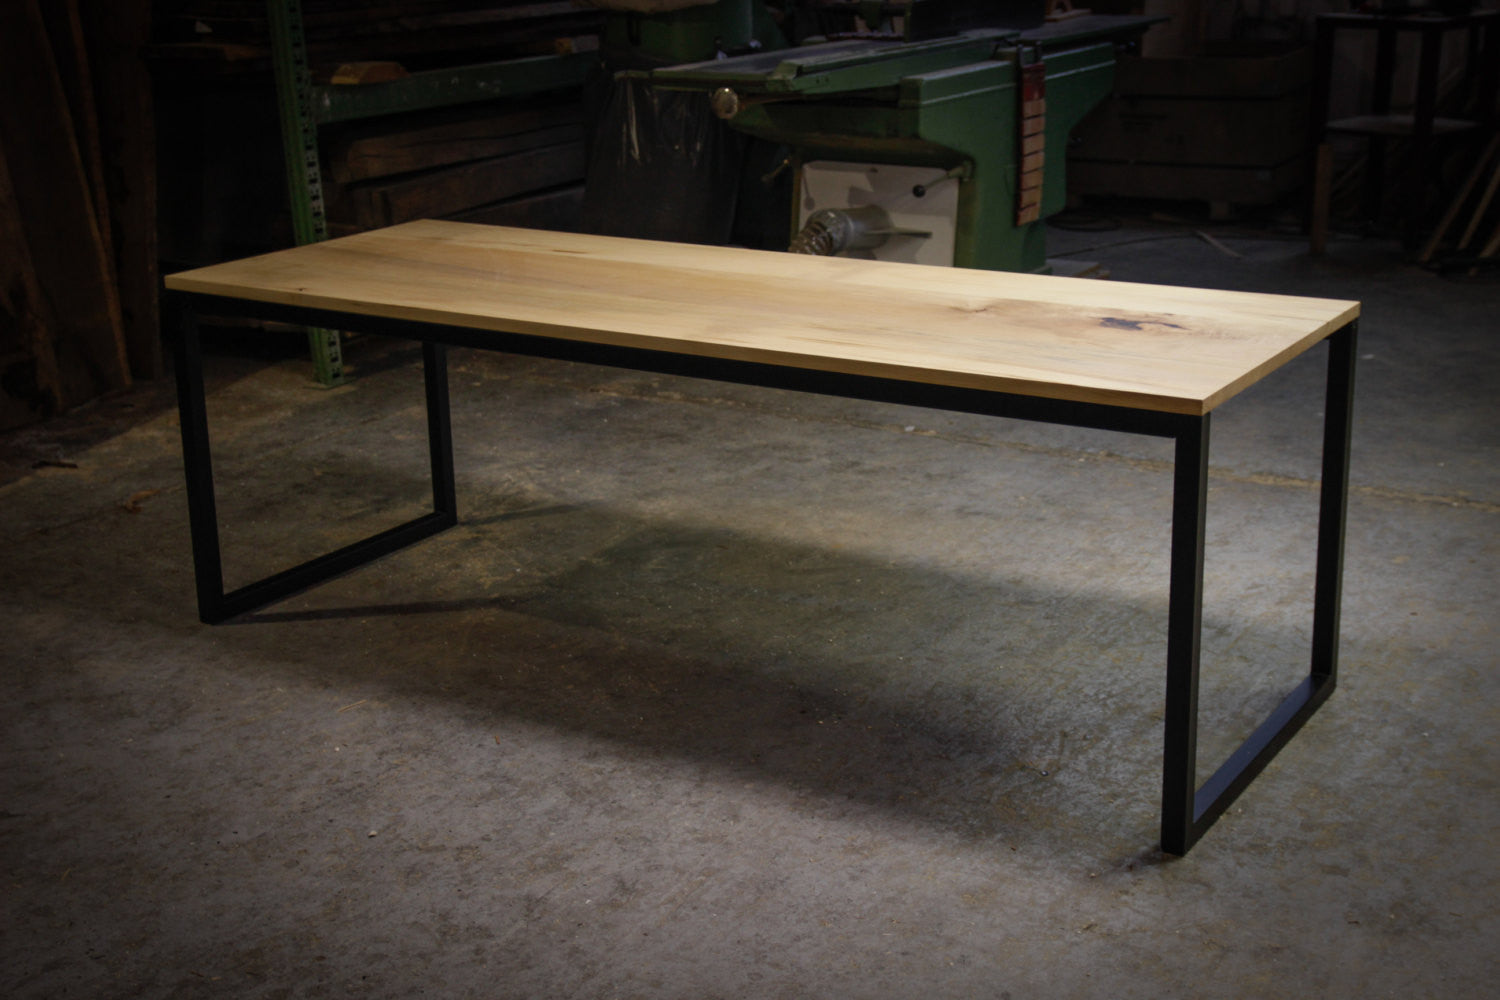 Tafel staal hout excellent meubels with tafel staal hout great